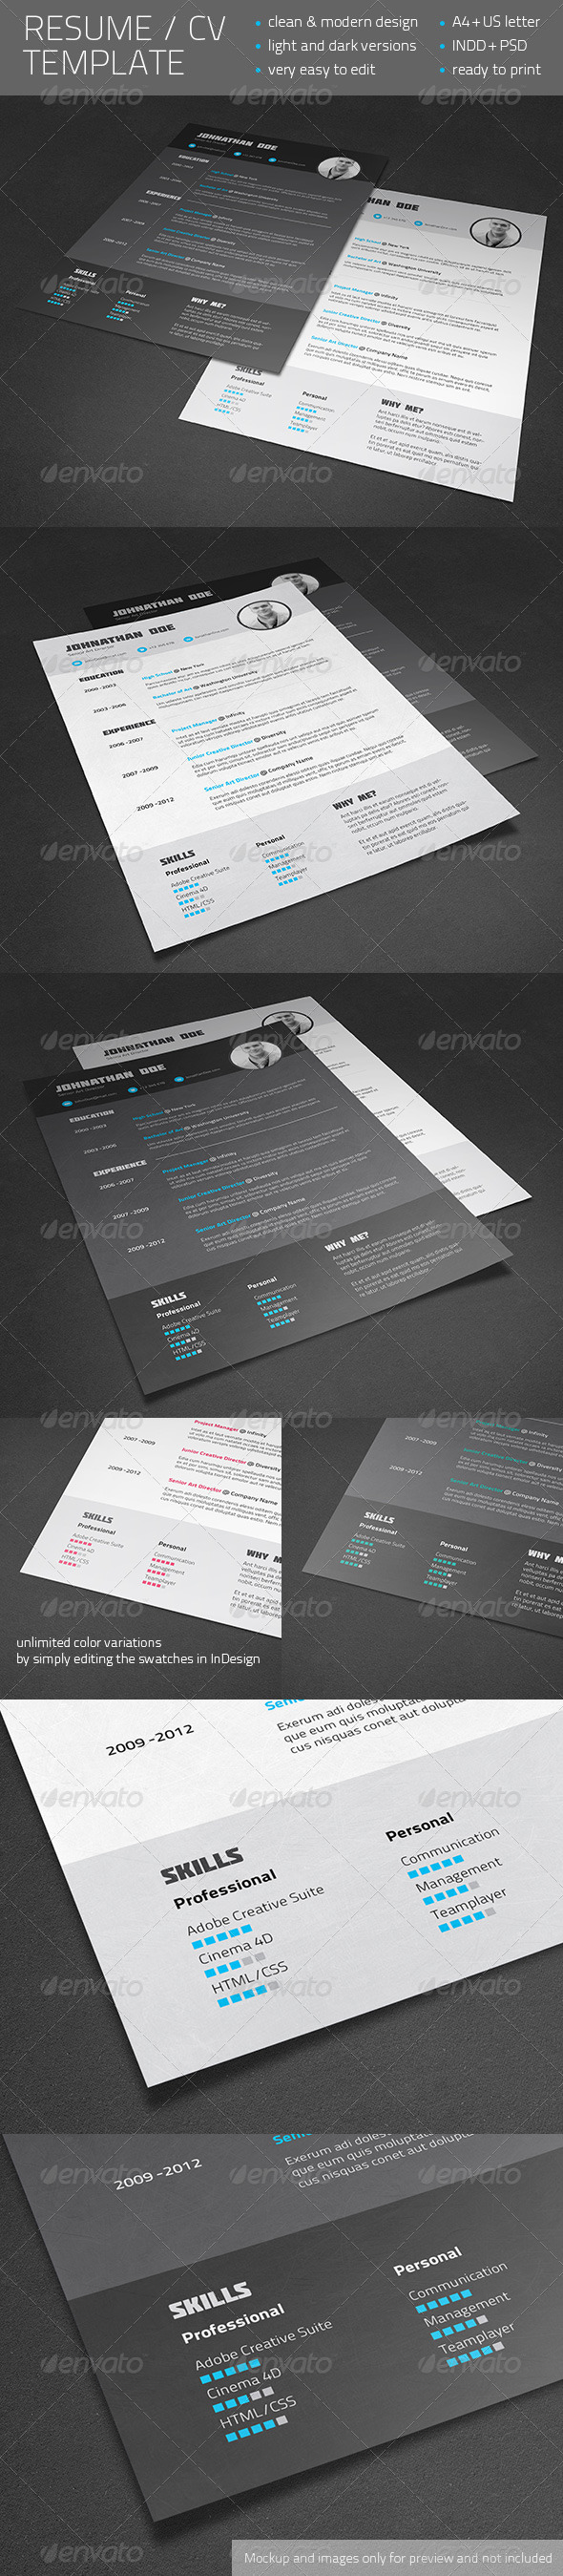 resume cv template resumes stationery